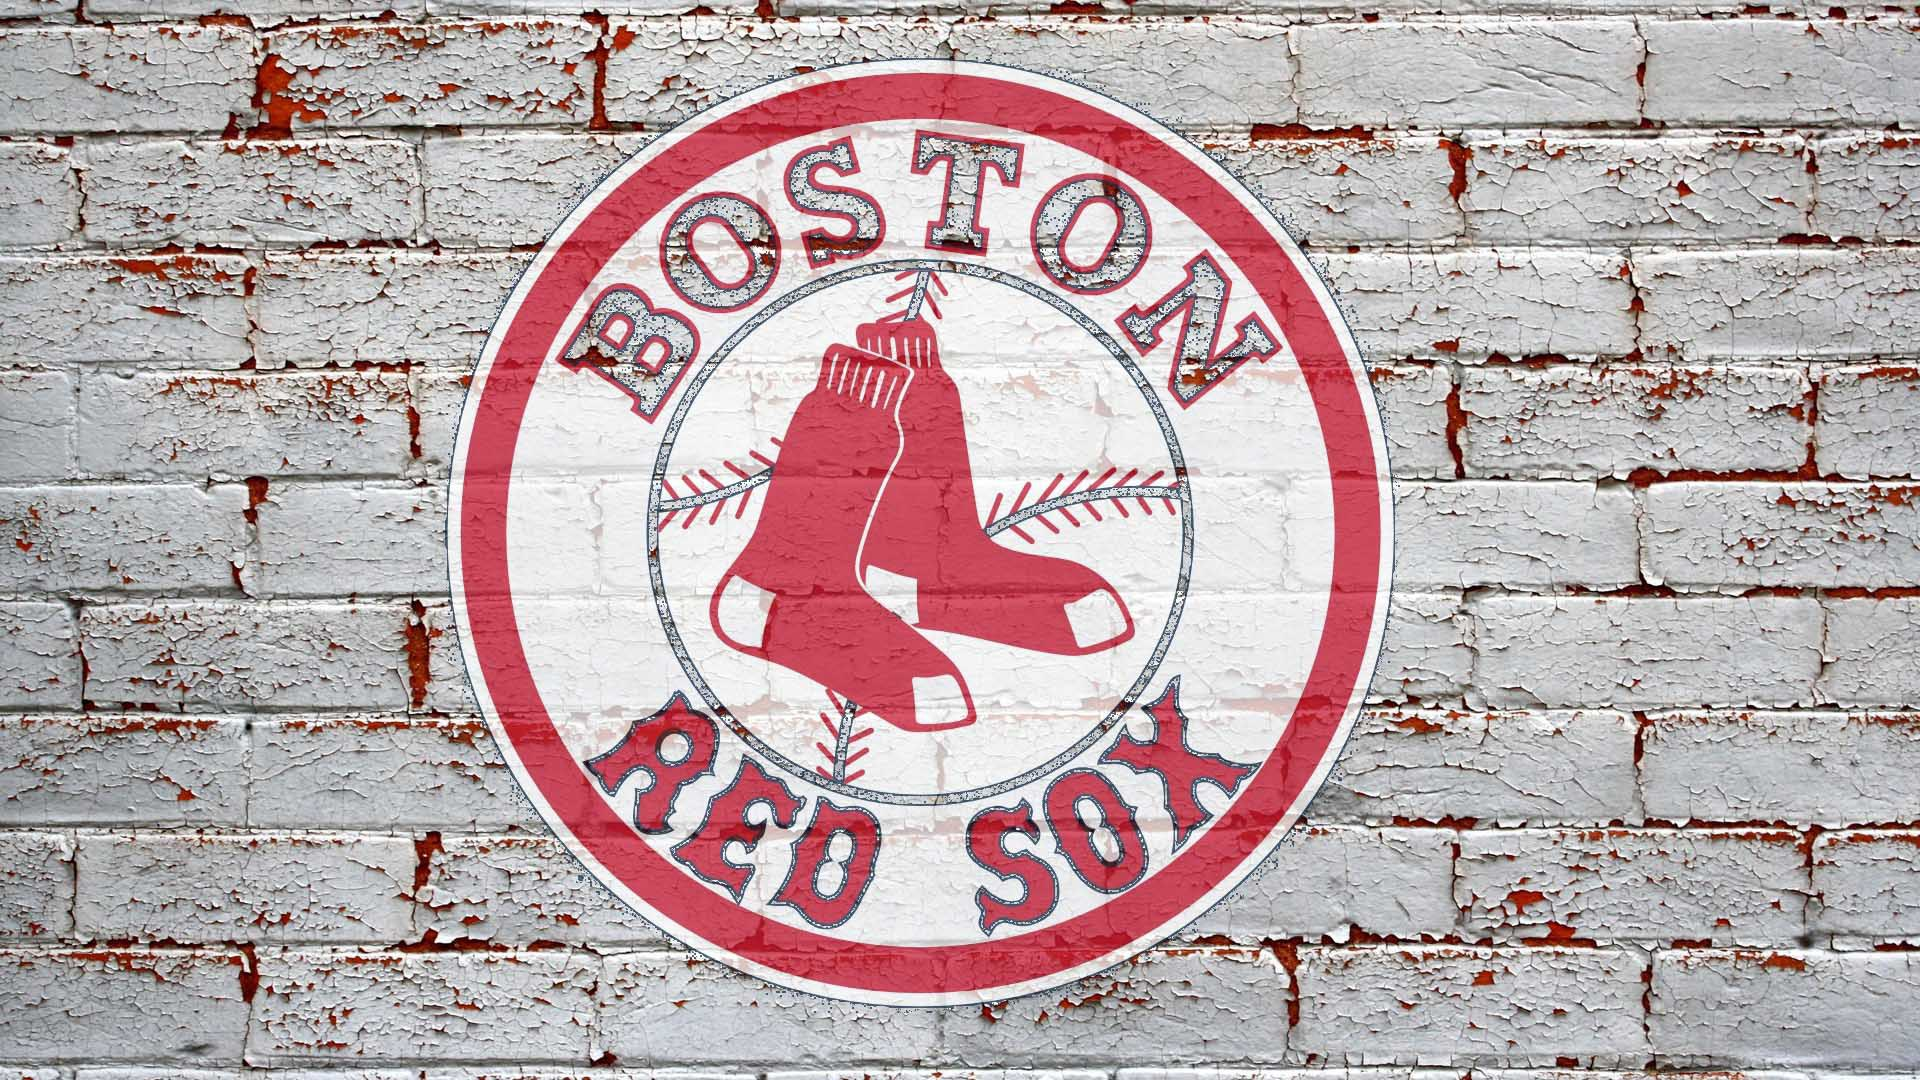 Red Sox Pictures